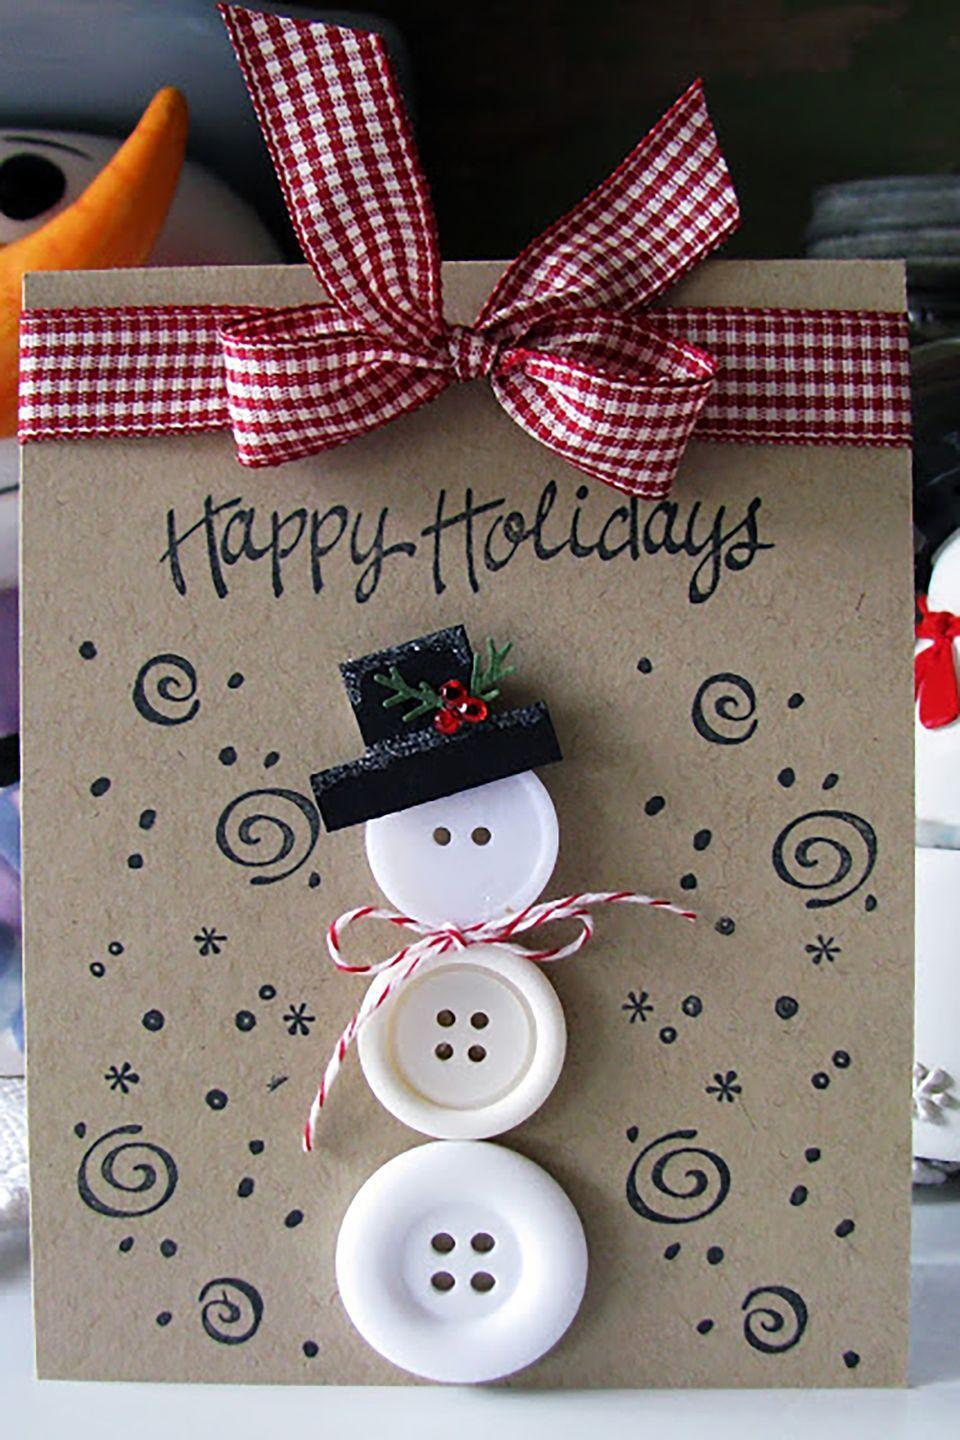 """<p>Give your friends and family a dose of holiday cheer with this creation featuring a snowman made from buttons.</p><p><strong>Get the tutorial at <a href=""""http://deedeecampbell.blogspot.com/2012/12/3-button-snowman-card-and-christmas.html"""" rel=""""nofollow noopener"""" target=""""_blank"""" data-ylk=""""slk:Scrappin' With DeeDee"""" class=""""link rapid-noclick-resp"""">Scrappin' With DeeDee</a></strong><strong>.</strong></p><p><a class=""""link rapid-noclick-resp"""" href=""""https://www.amazon.com/GANSSIA-Sewing-Flatback-Buttons-Colored/dp/B00RCDXI70/?tag=syn-yahoo-20&ascsubtag=%5Bartid%7C10050.g.3872%5Bsrc%7Cyahoo-us"""" rel=""""nofollow noopener"""" target=""""_blank"""" data-ylk=""""slk:SHOP WHITE BUTTONS"""">SHOP WHITE BUTTONS</a></p>"""